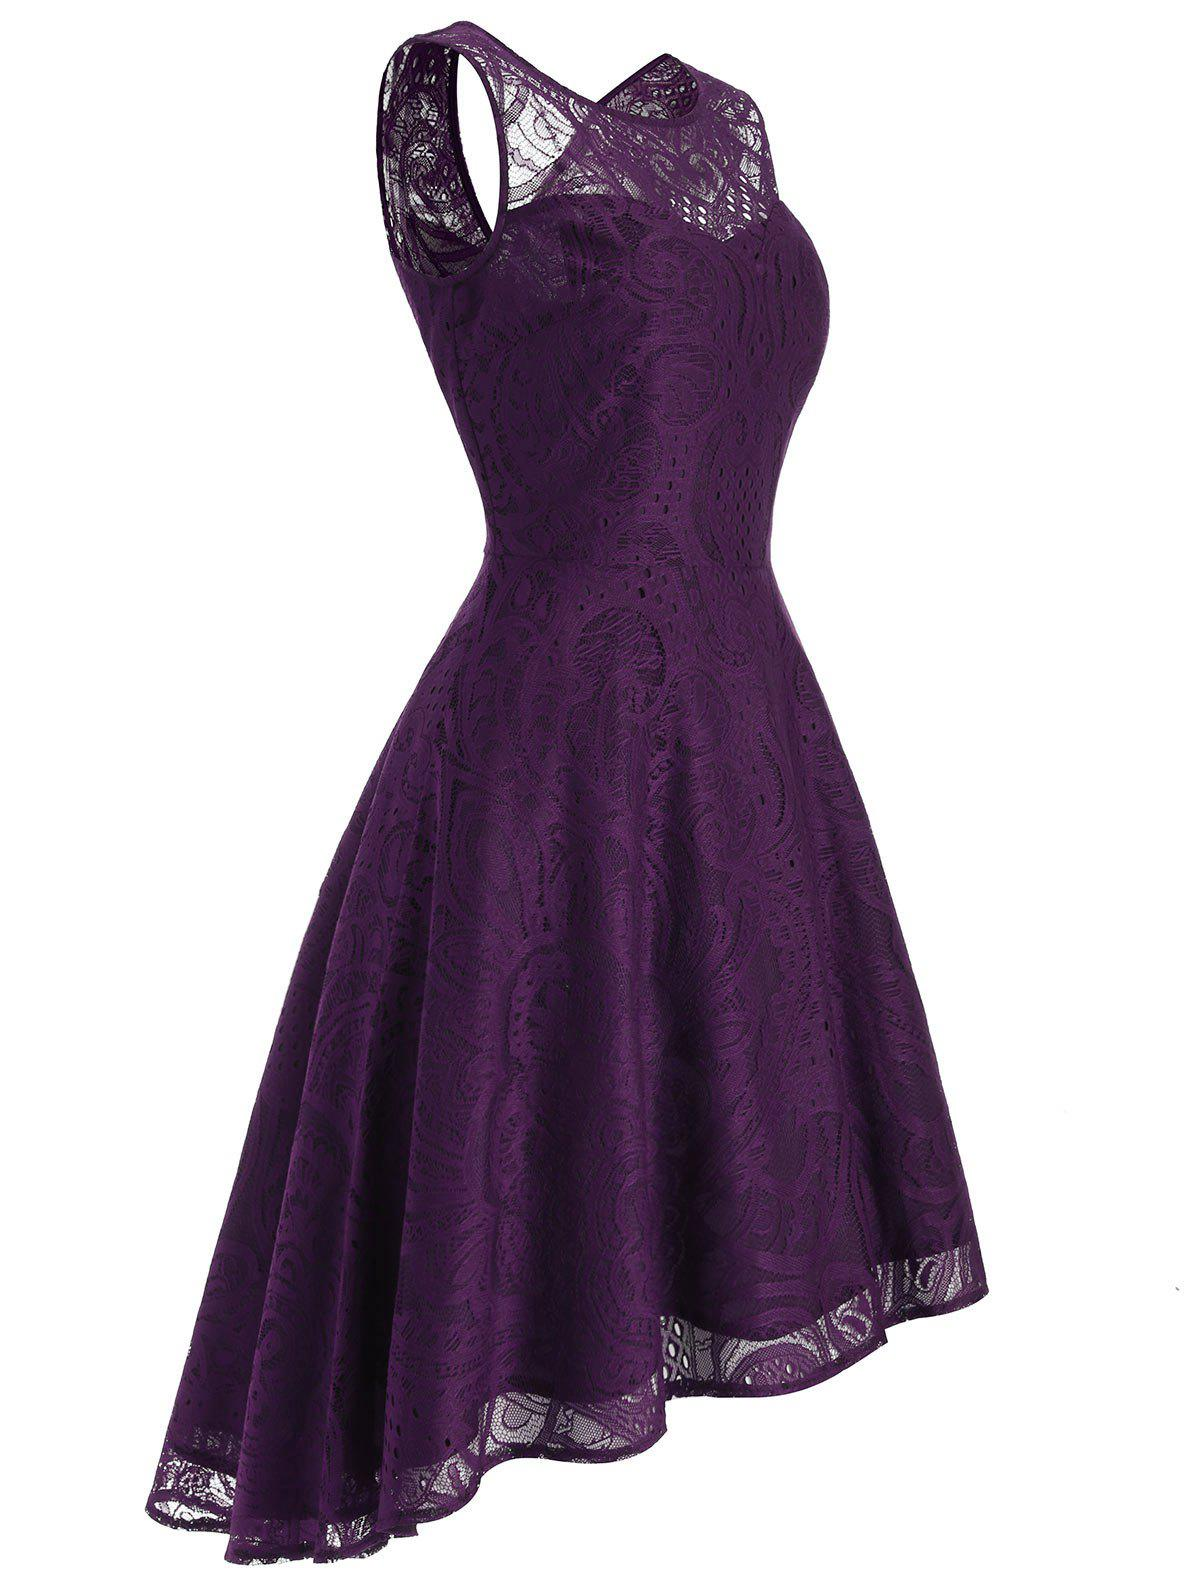 Lace Sleeveless High Low Prom Dress - DARK ORCHID 2XL